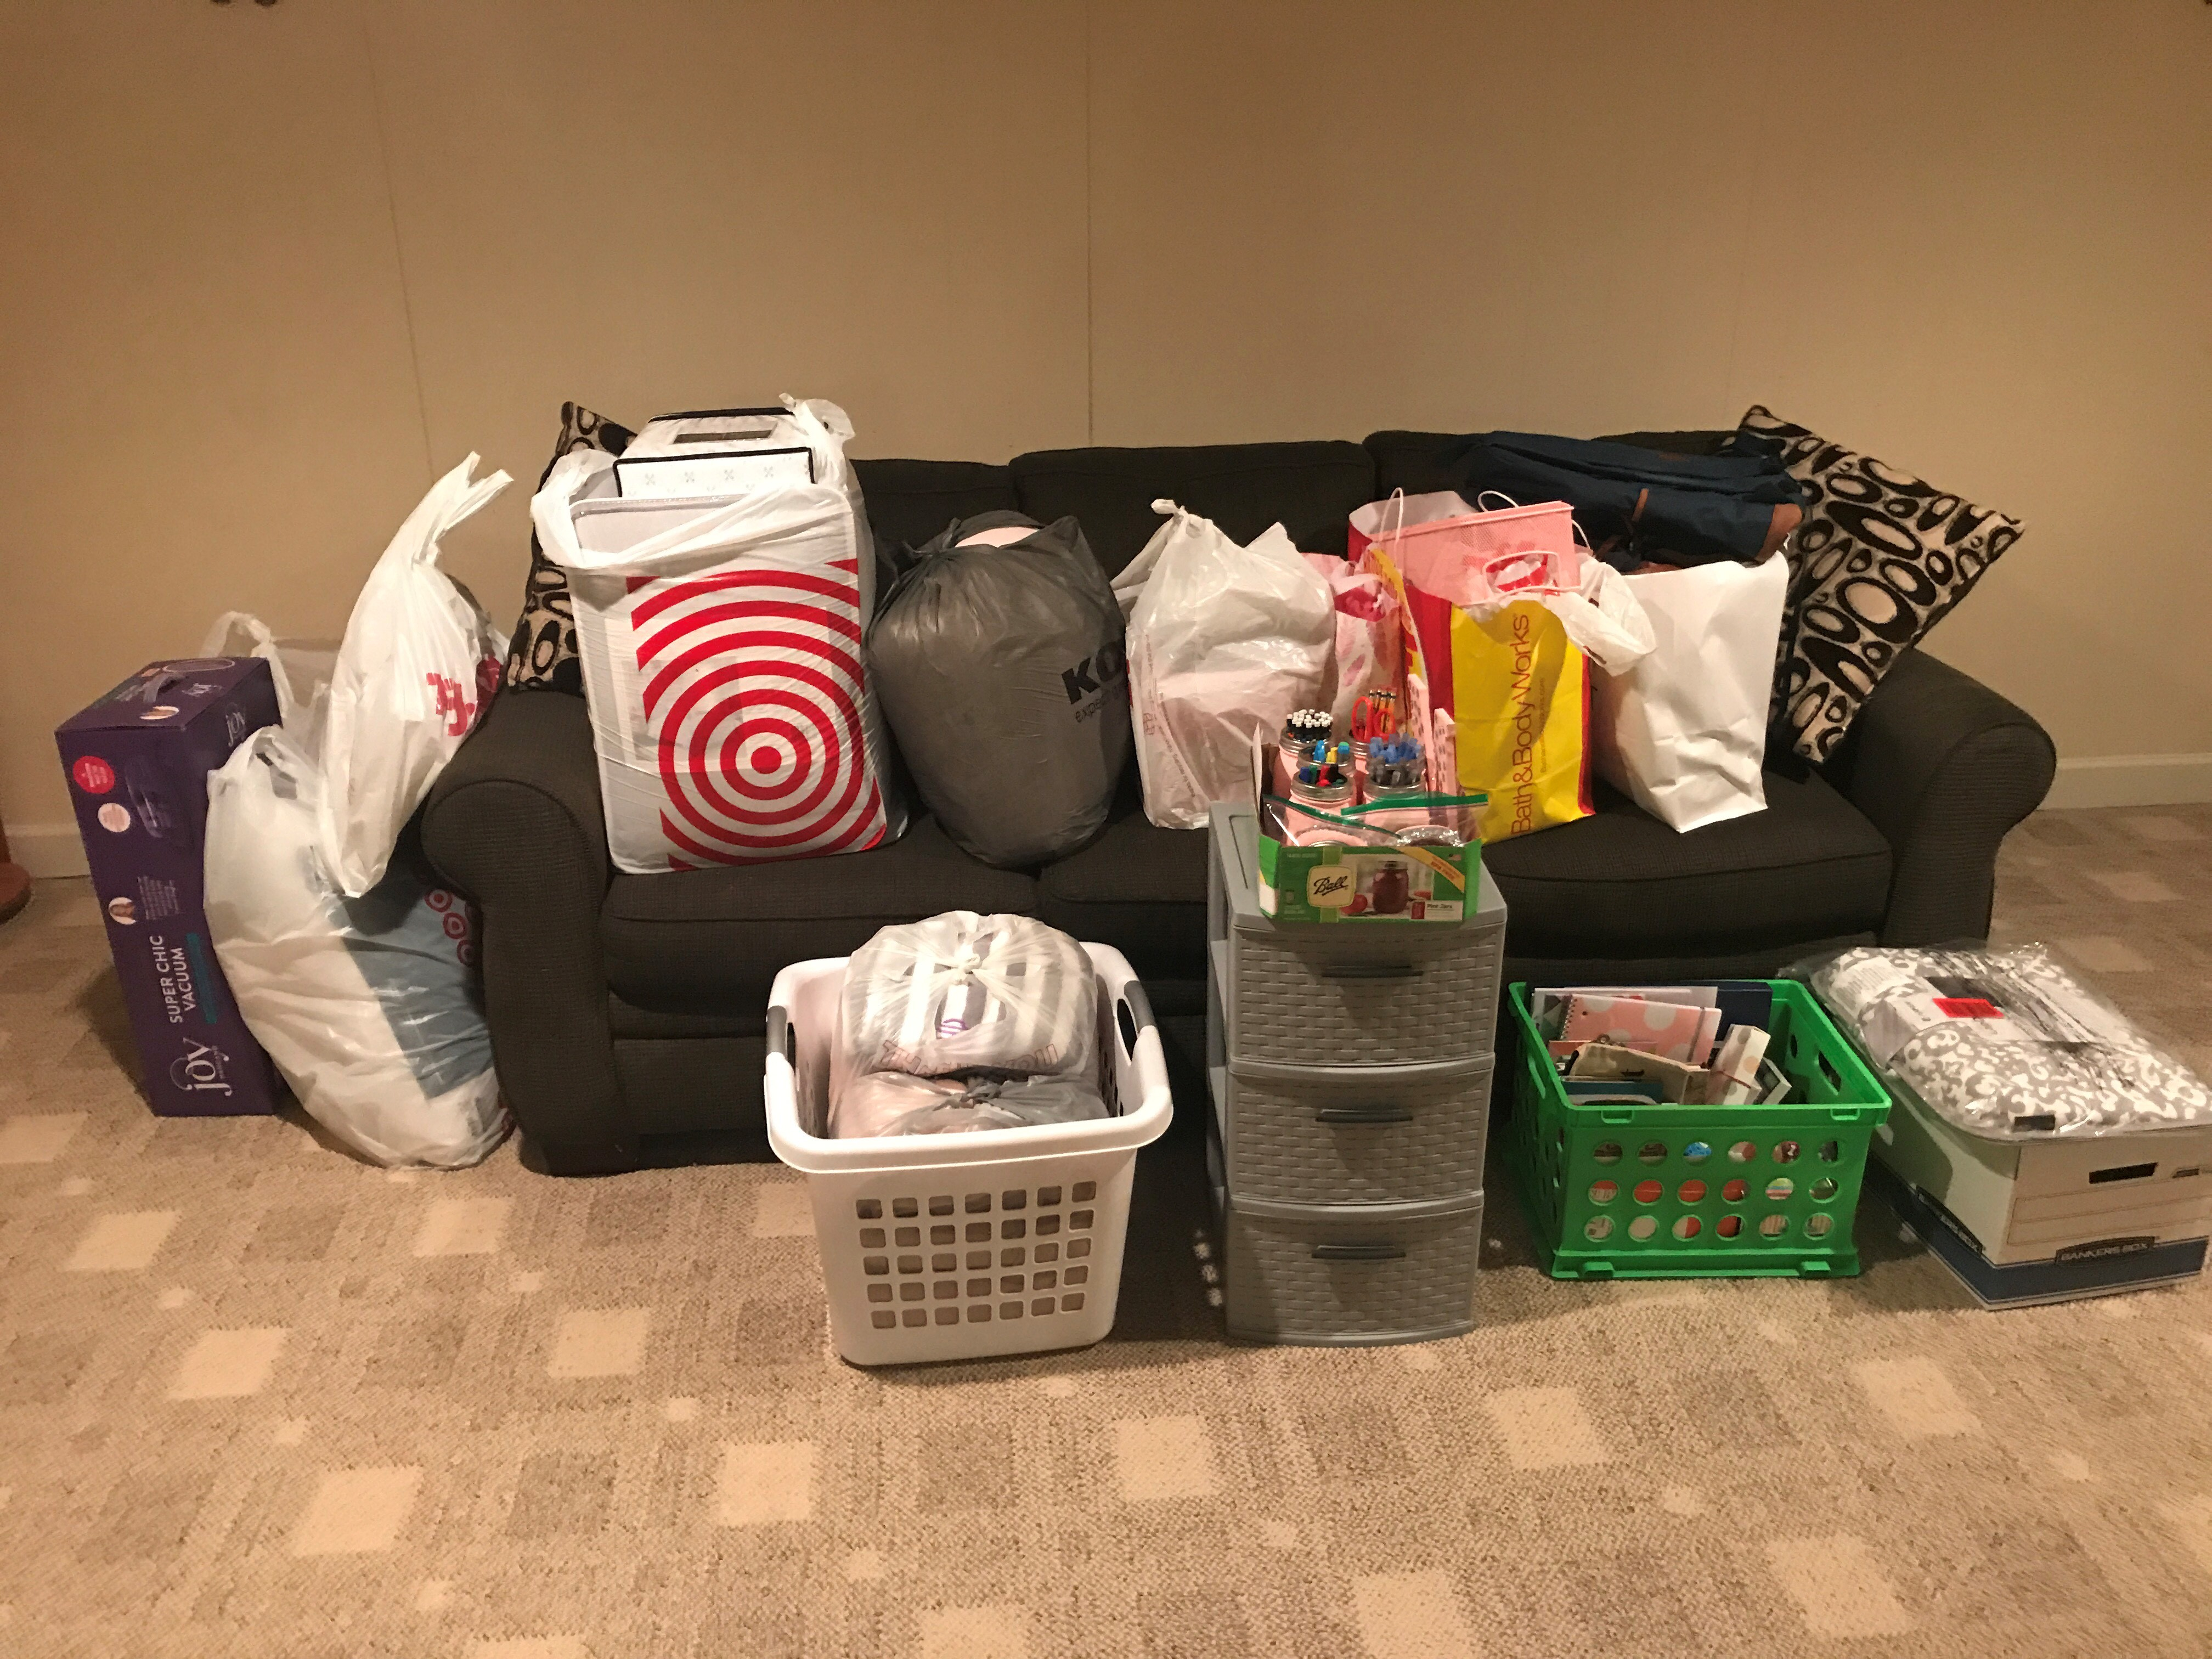 Marisa Balanda '21 ended up coming away with a good amount of stuff as she shopped for dorm decor